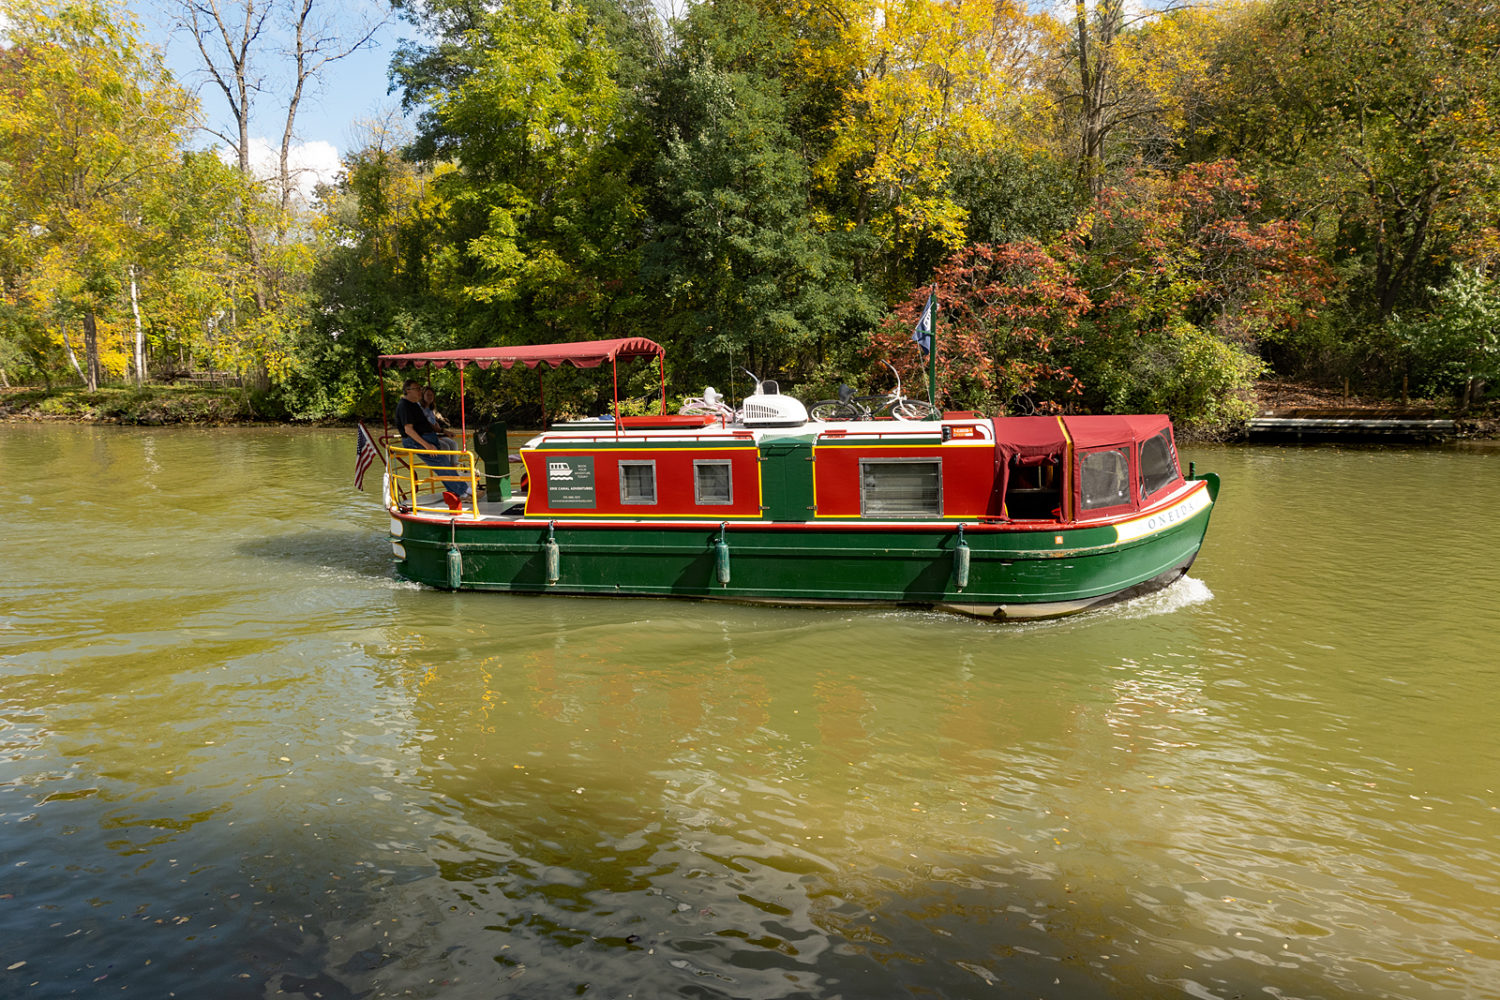 Boat along the Erie Canal near Fairport